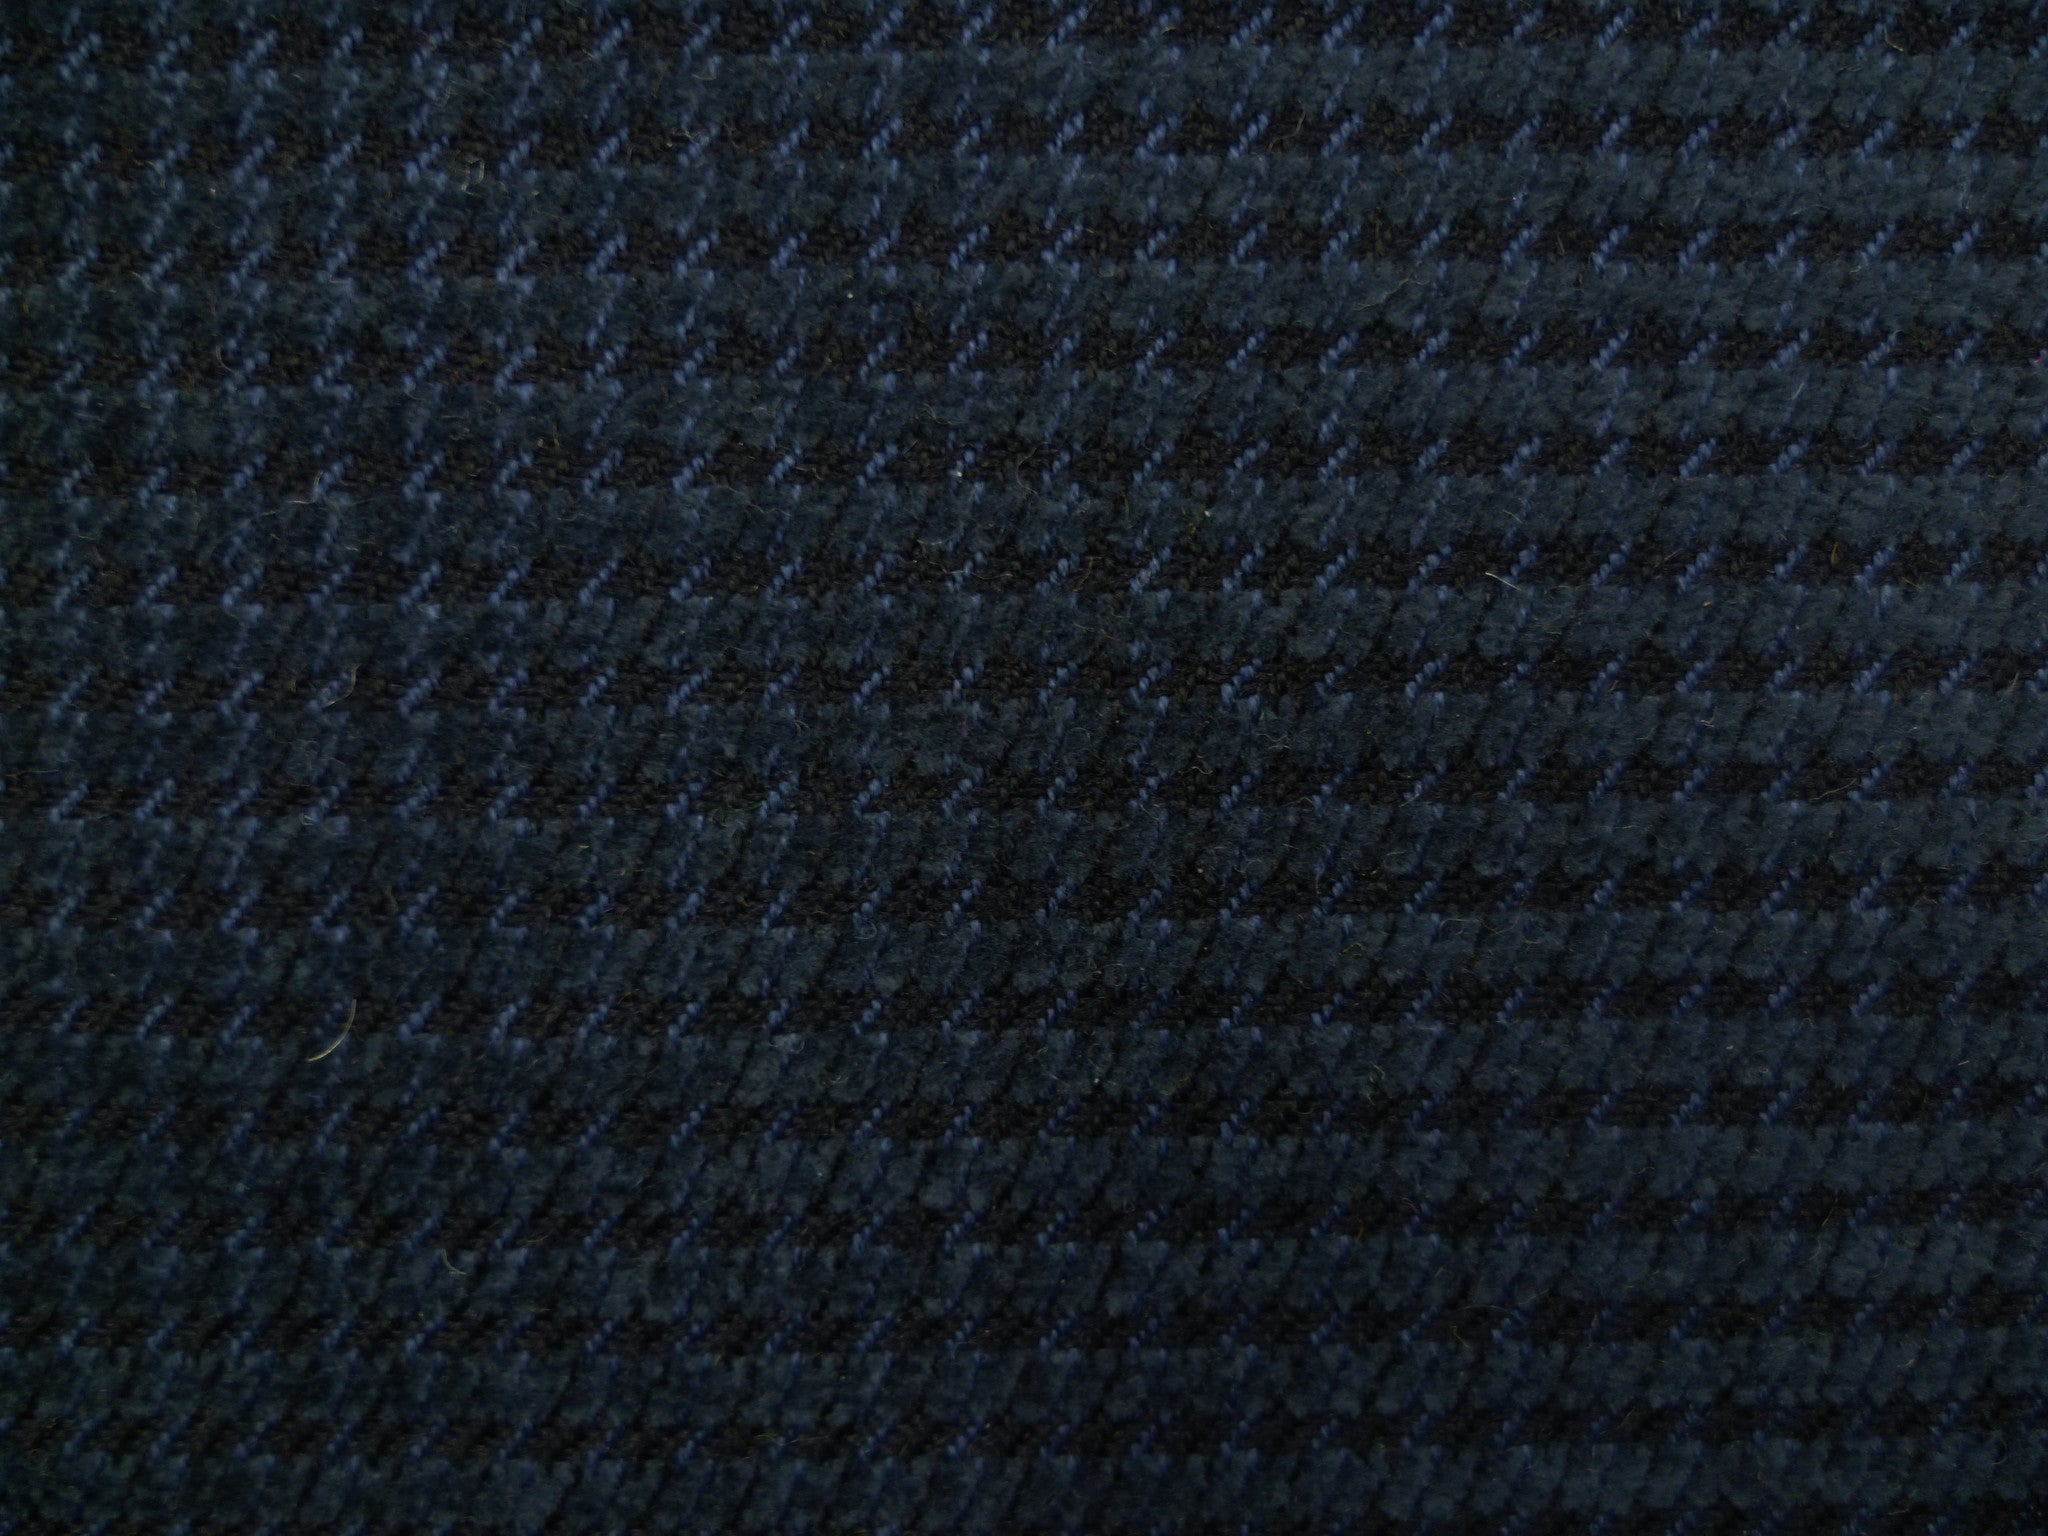 Steel Blue and Black Corduroy Houndstooth Wool-Cotton